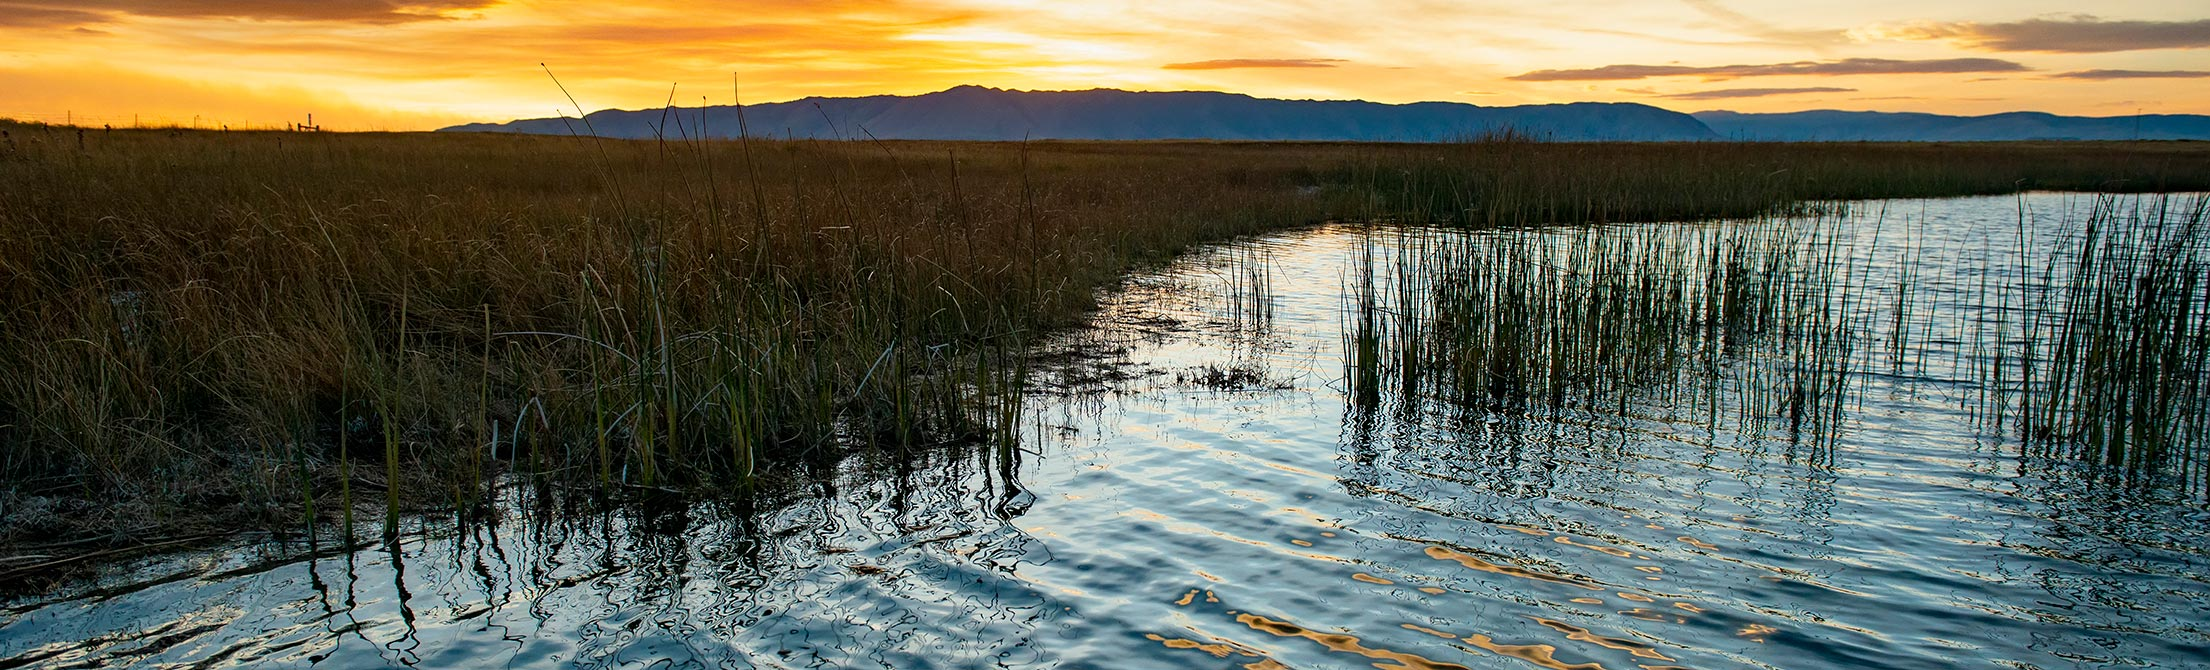 a photo of the Laramie Plains Lakes at sunset